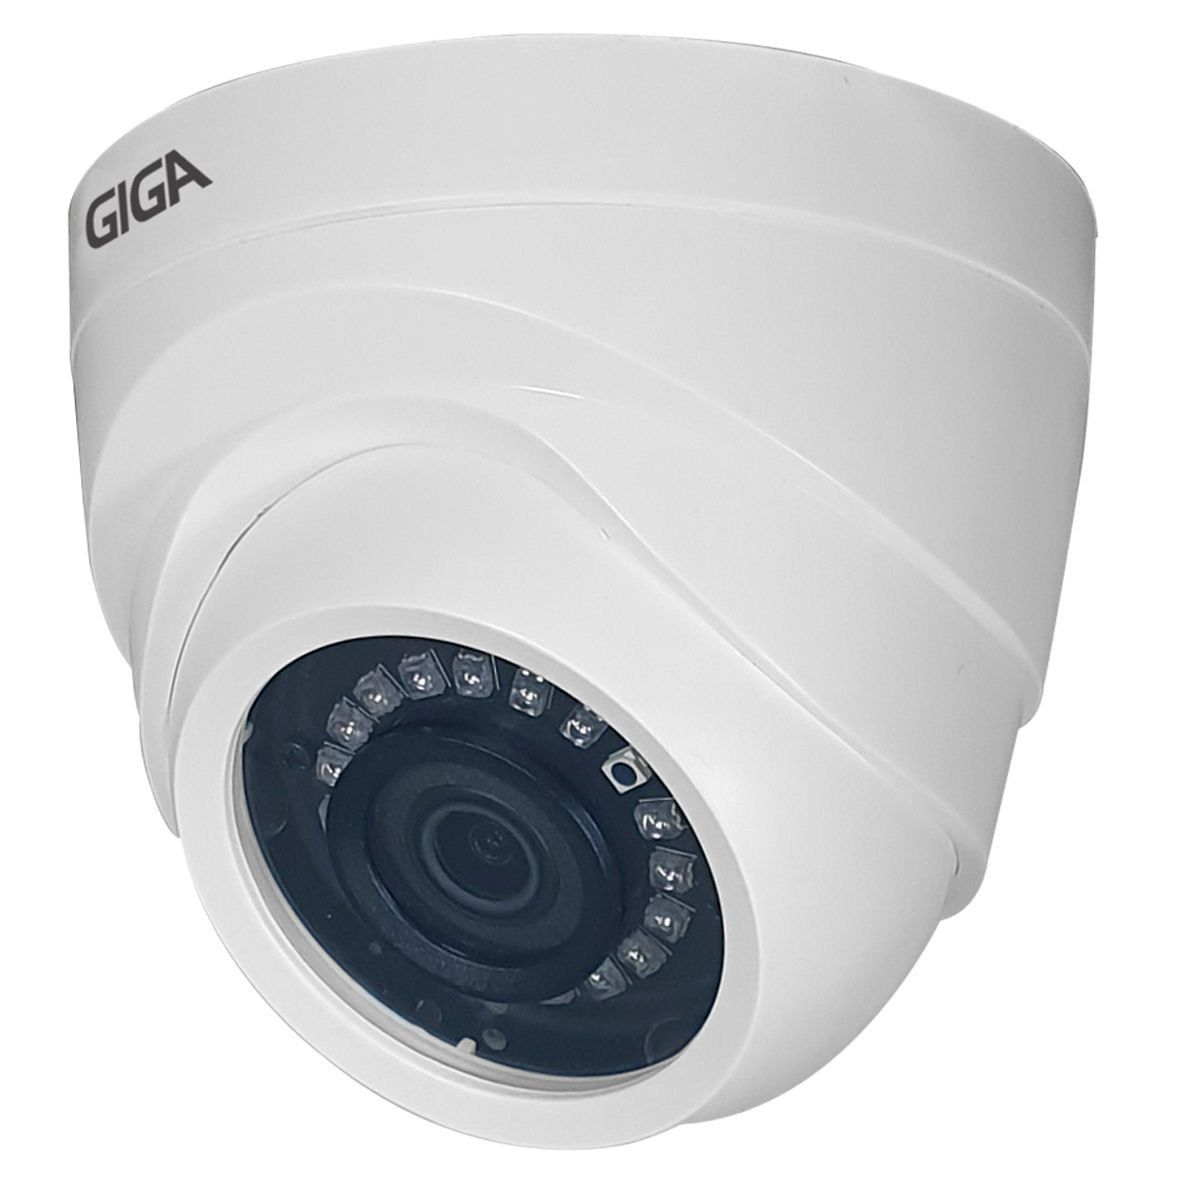 Câmera Dome Giga Open Hd Orion Full Hd 20 Metros 3.6MM GS0270